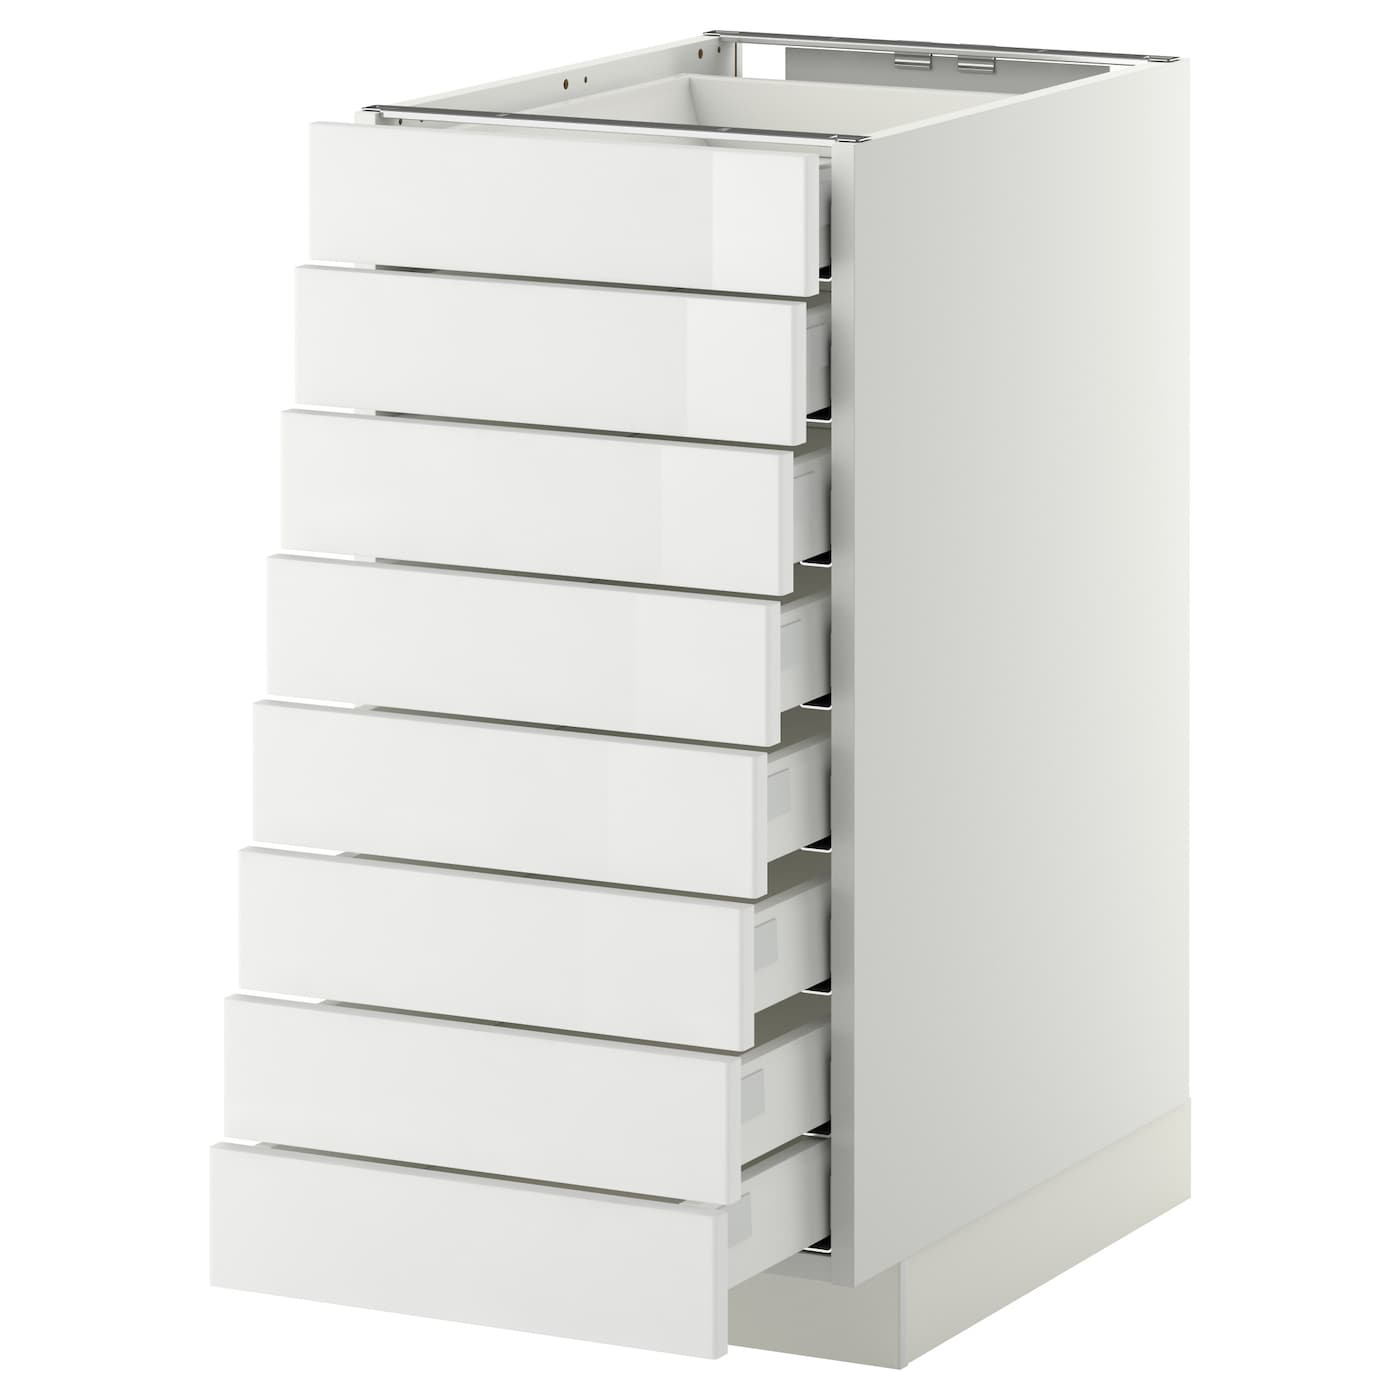 Metod Maximera Base Cabinet 8 Fronts 8 Low Drawers White Ringhult White 40x60 Cm Ikea